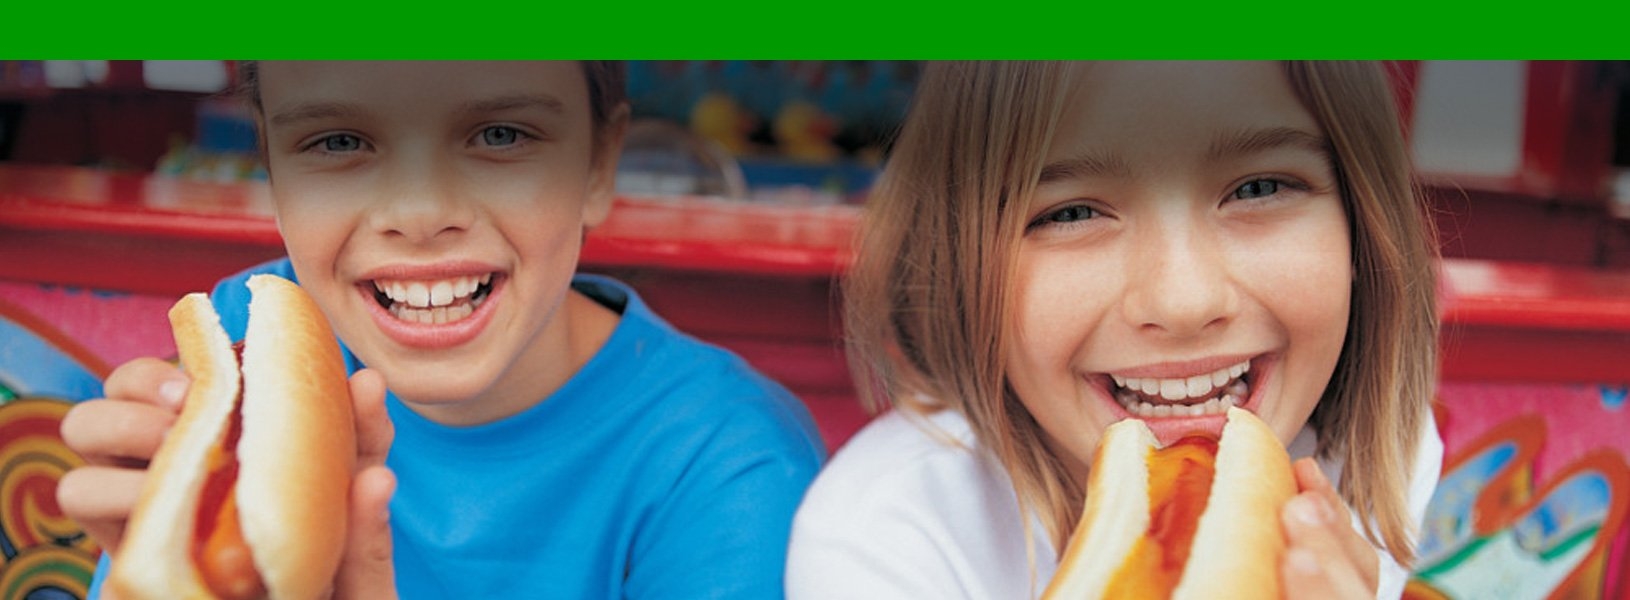 Kids Eating Hot Dogs - Elite Event Catering Services